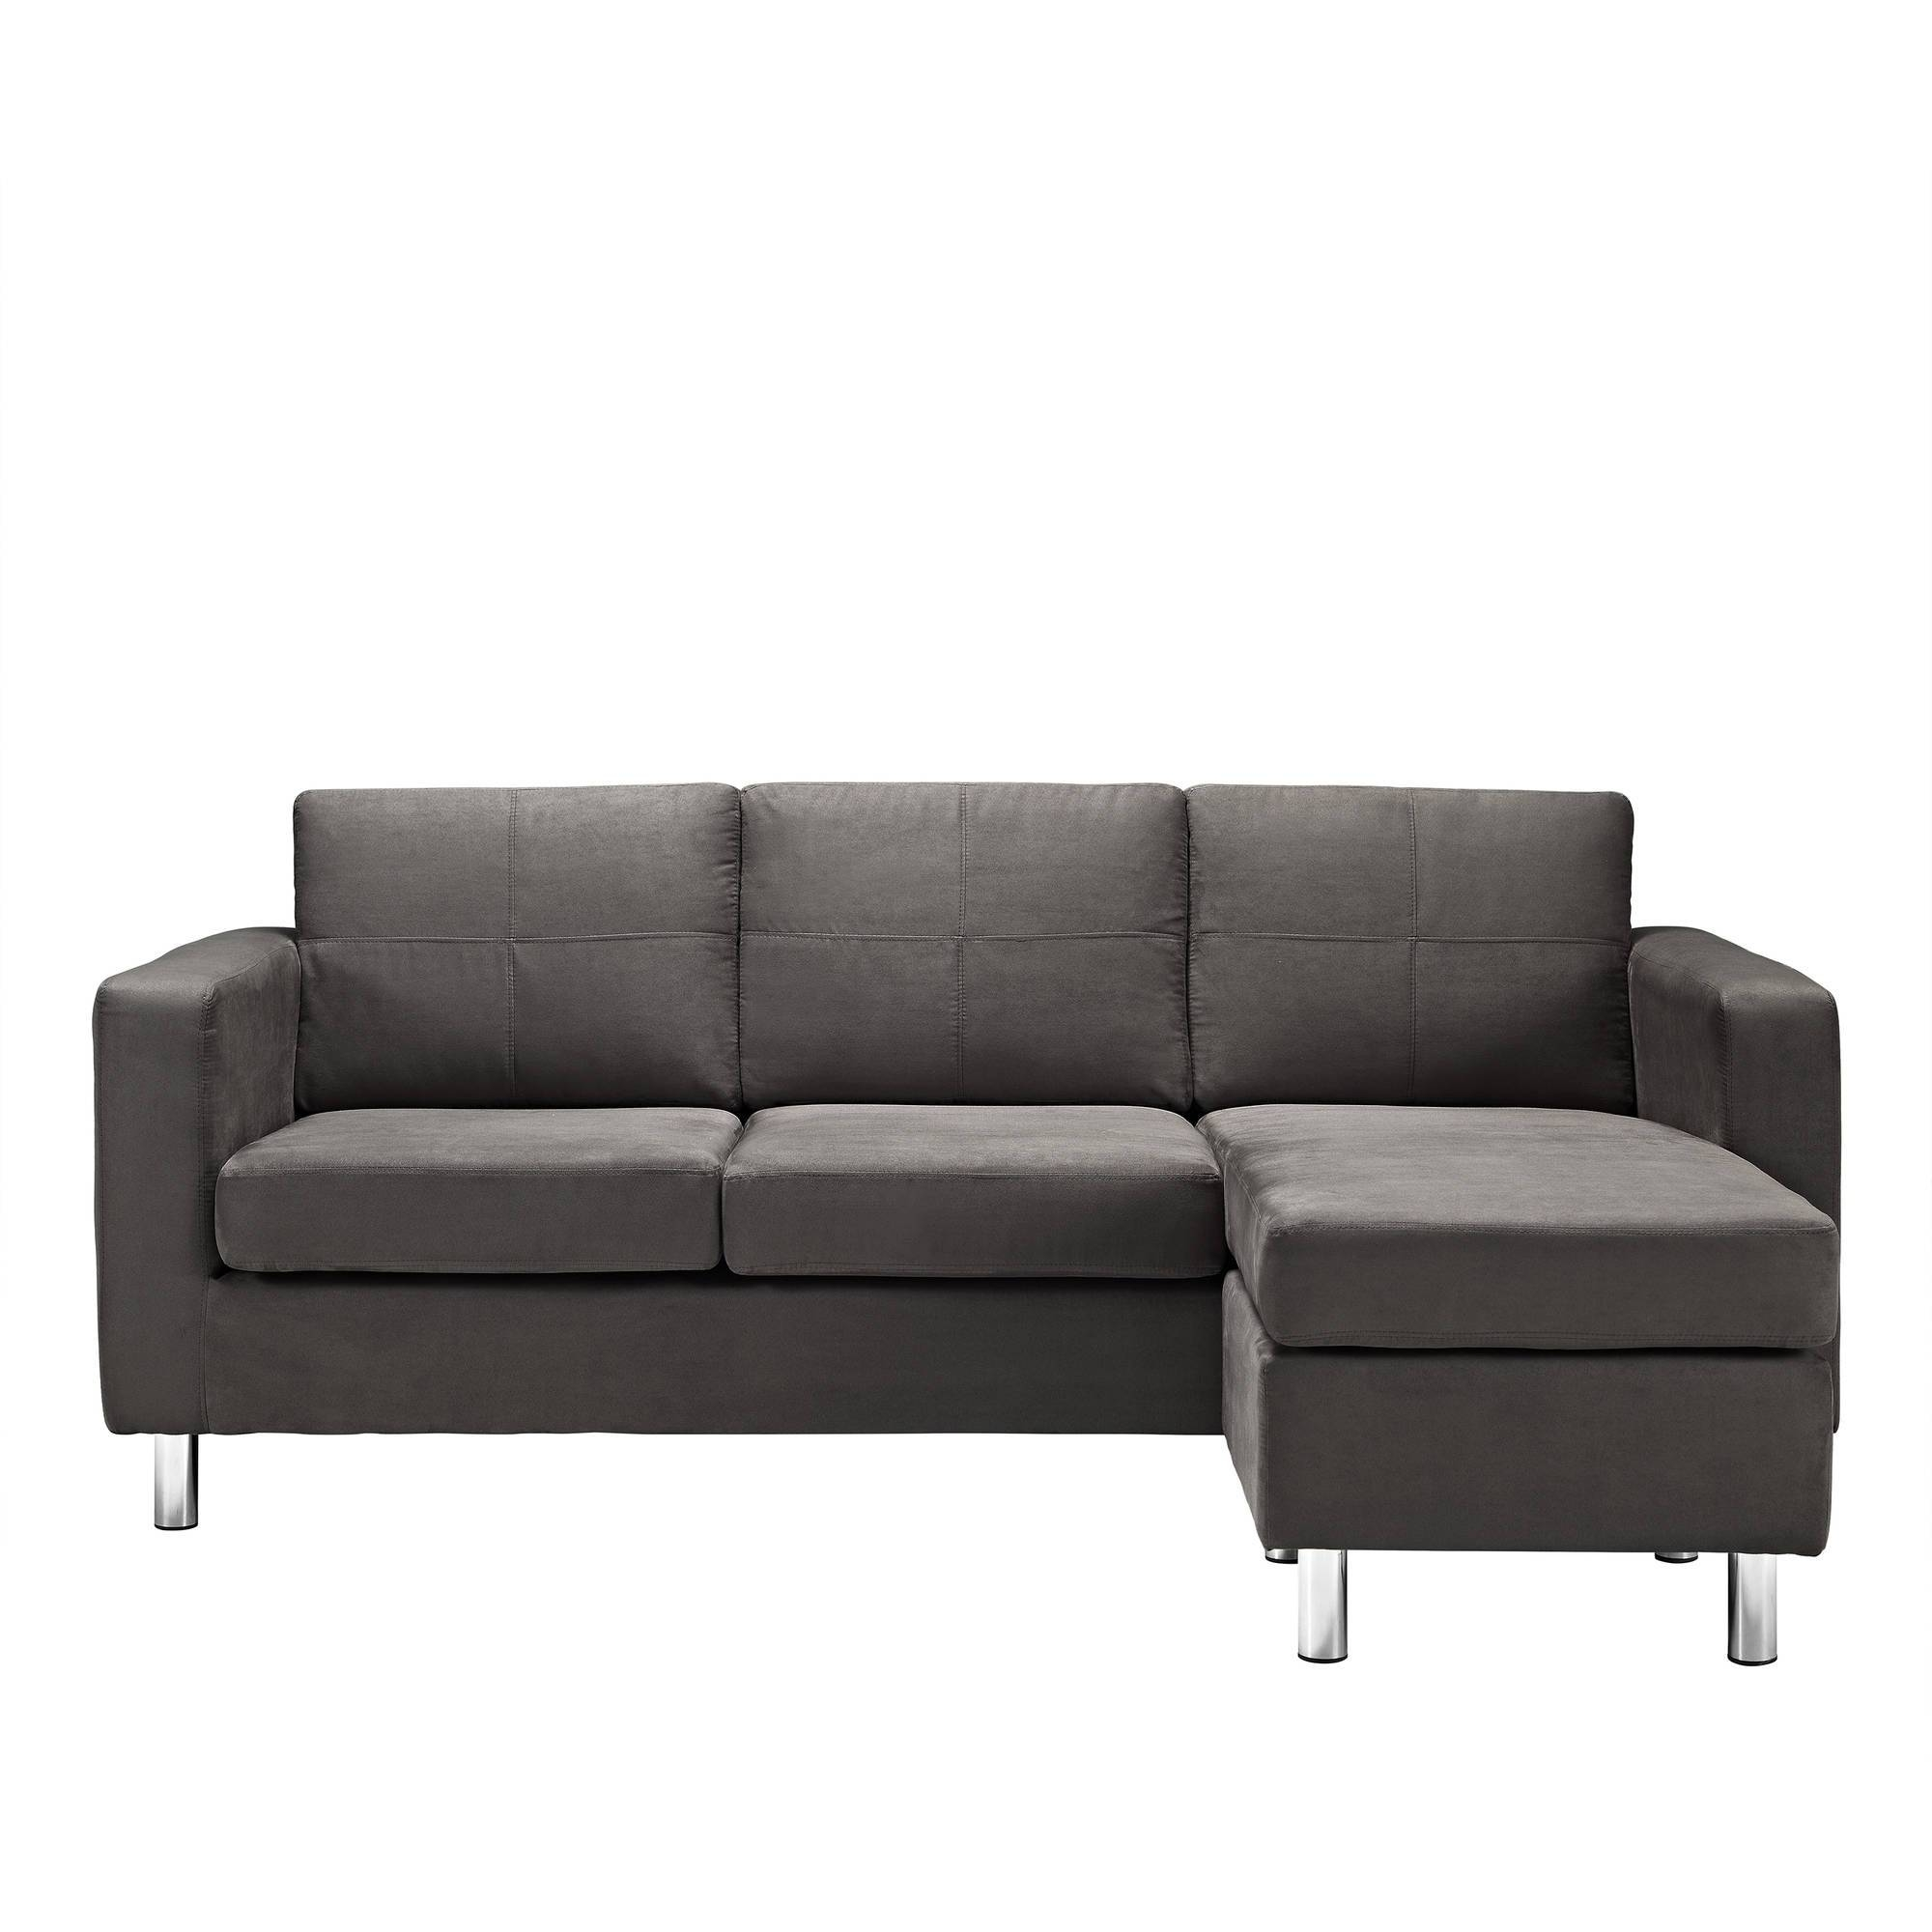 Dorel Living Small Spaces Configurable Sectional Sofa, Multiple throughout Small Sectional Sofas For Small Spaces (Image 10 of 25)